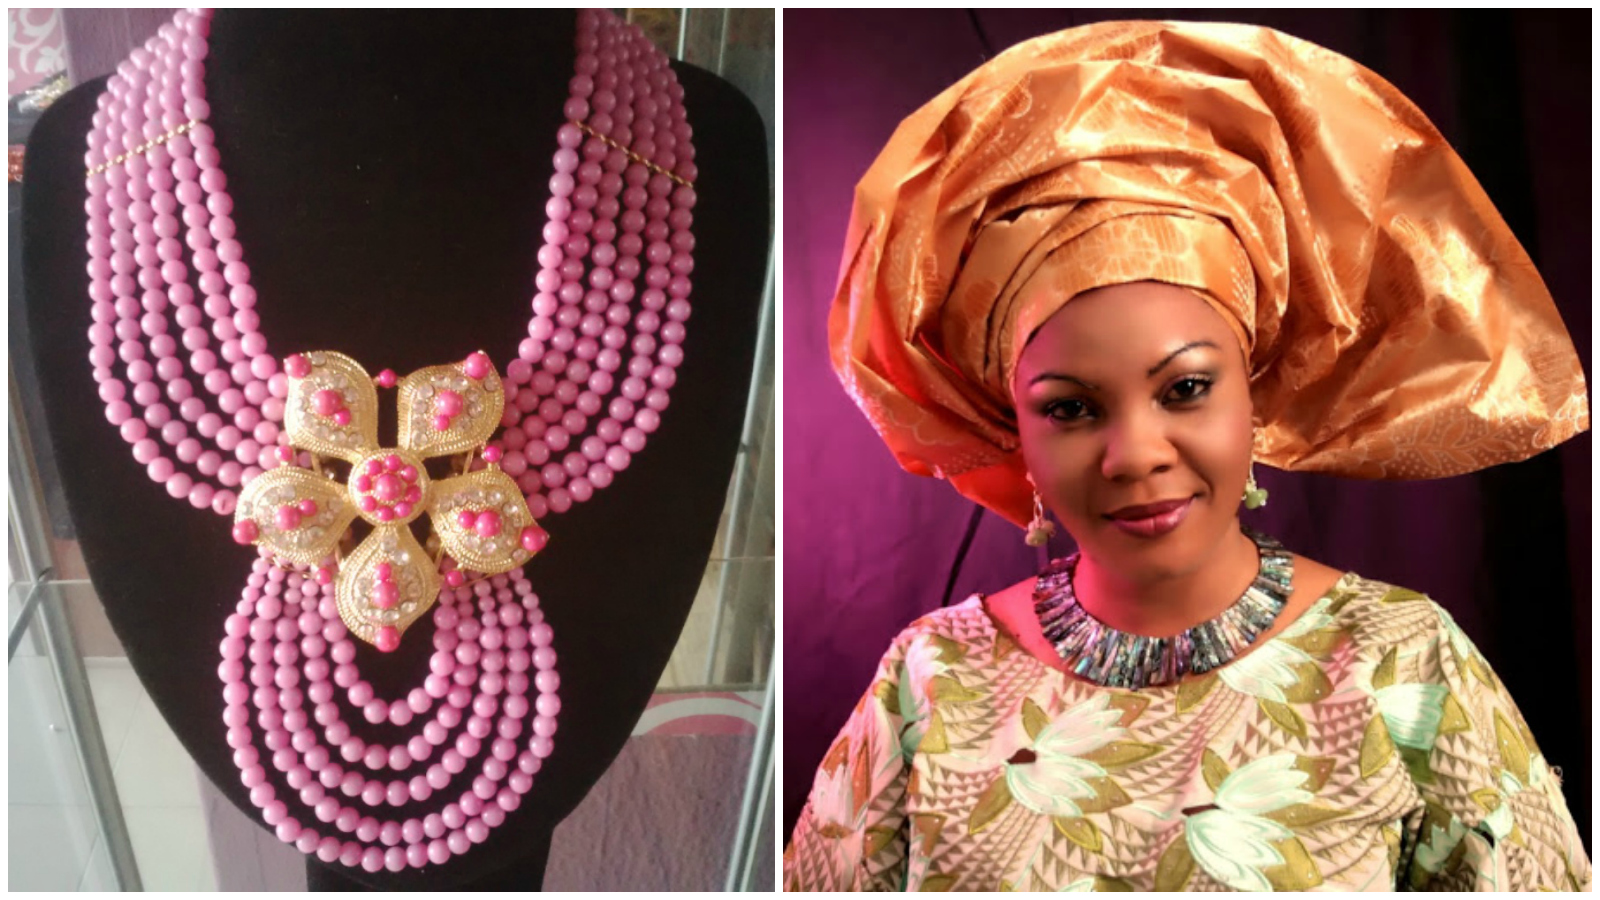 Abimbola Baolgun founder of Nigeria's Bimbeads Conceptis elevating the art of beading and creating the most spectacular pieces inspired by nature. Click to learn more.